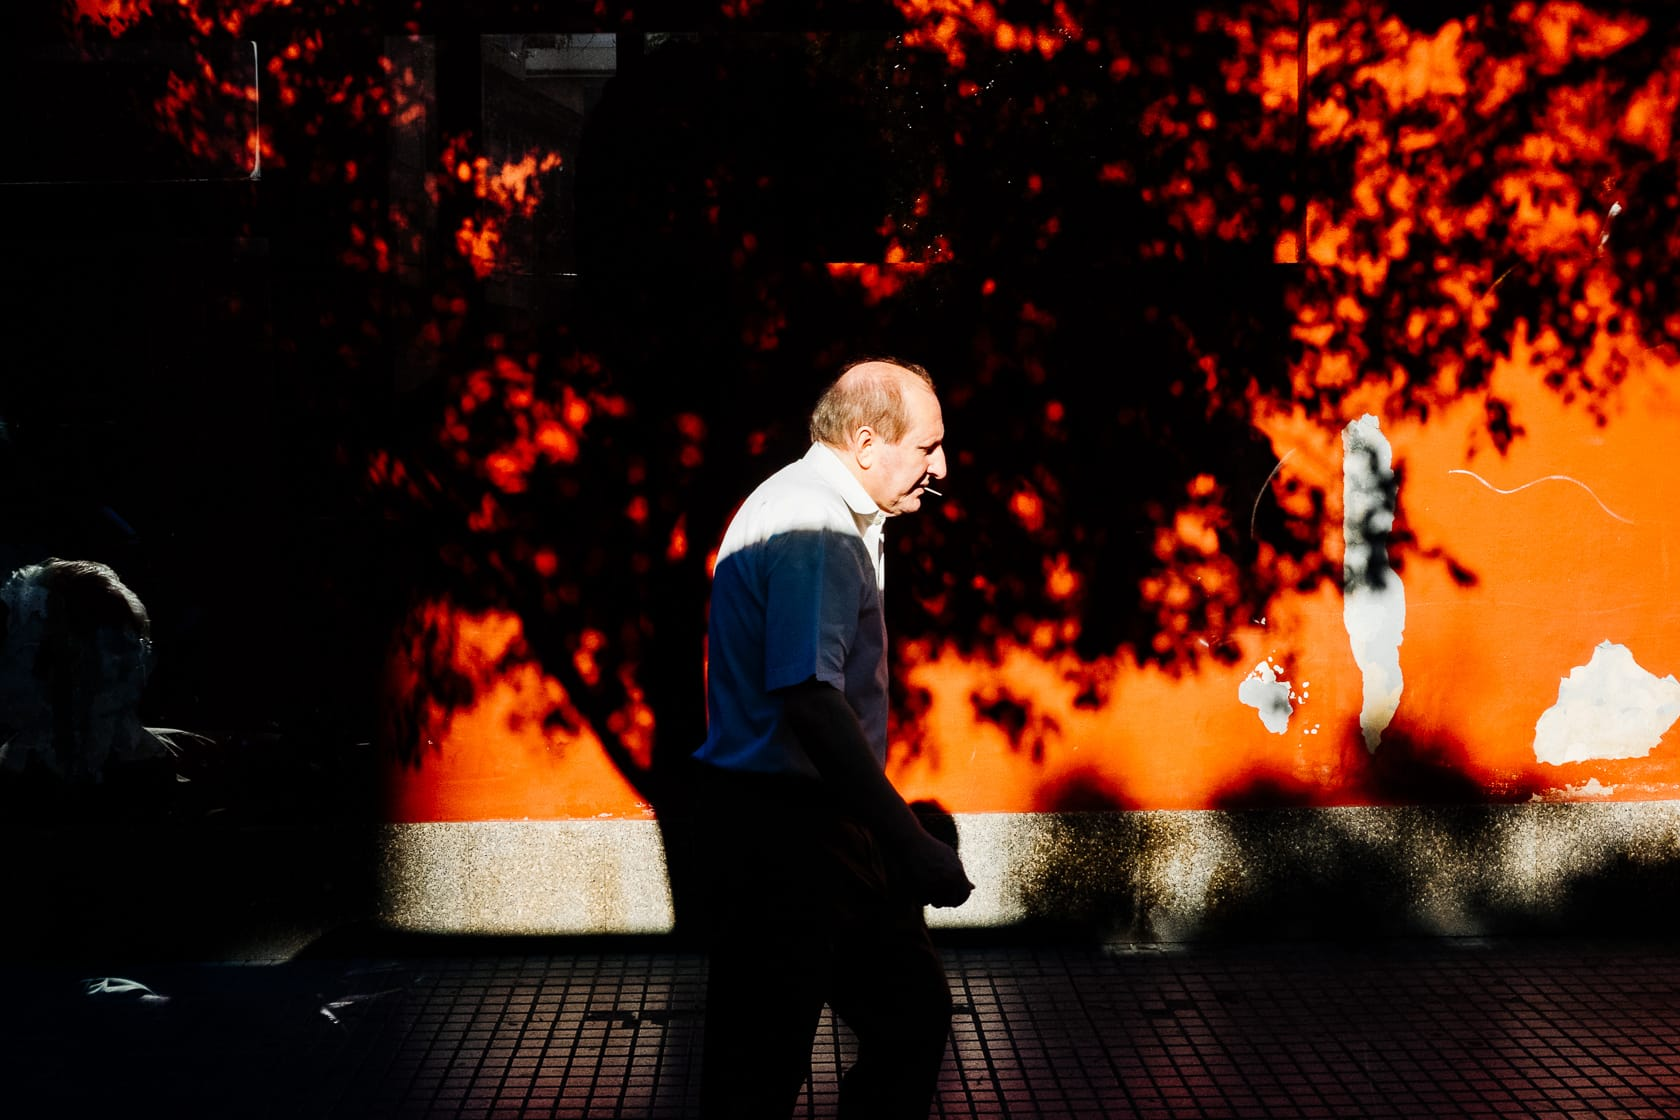 High contrast street photography 1